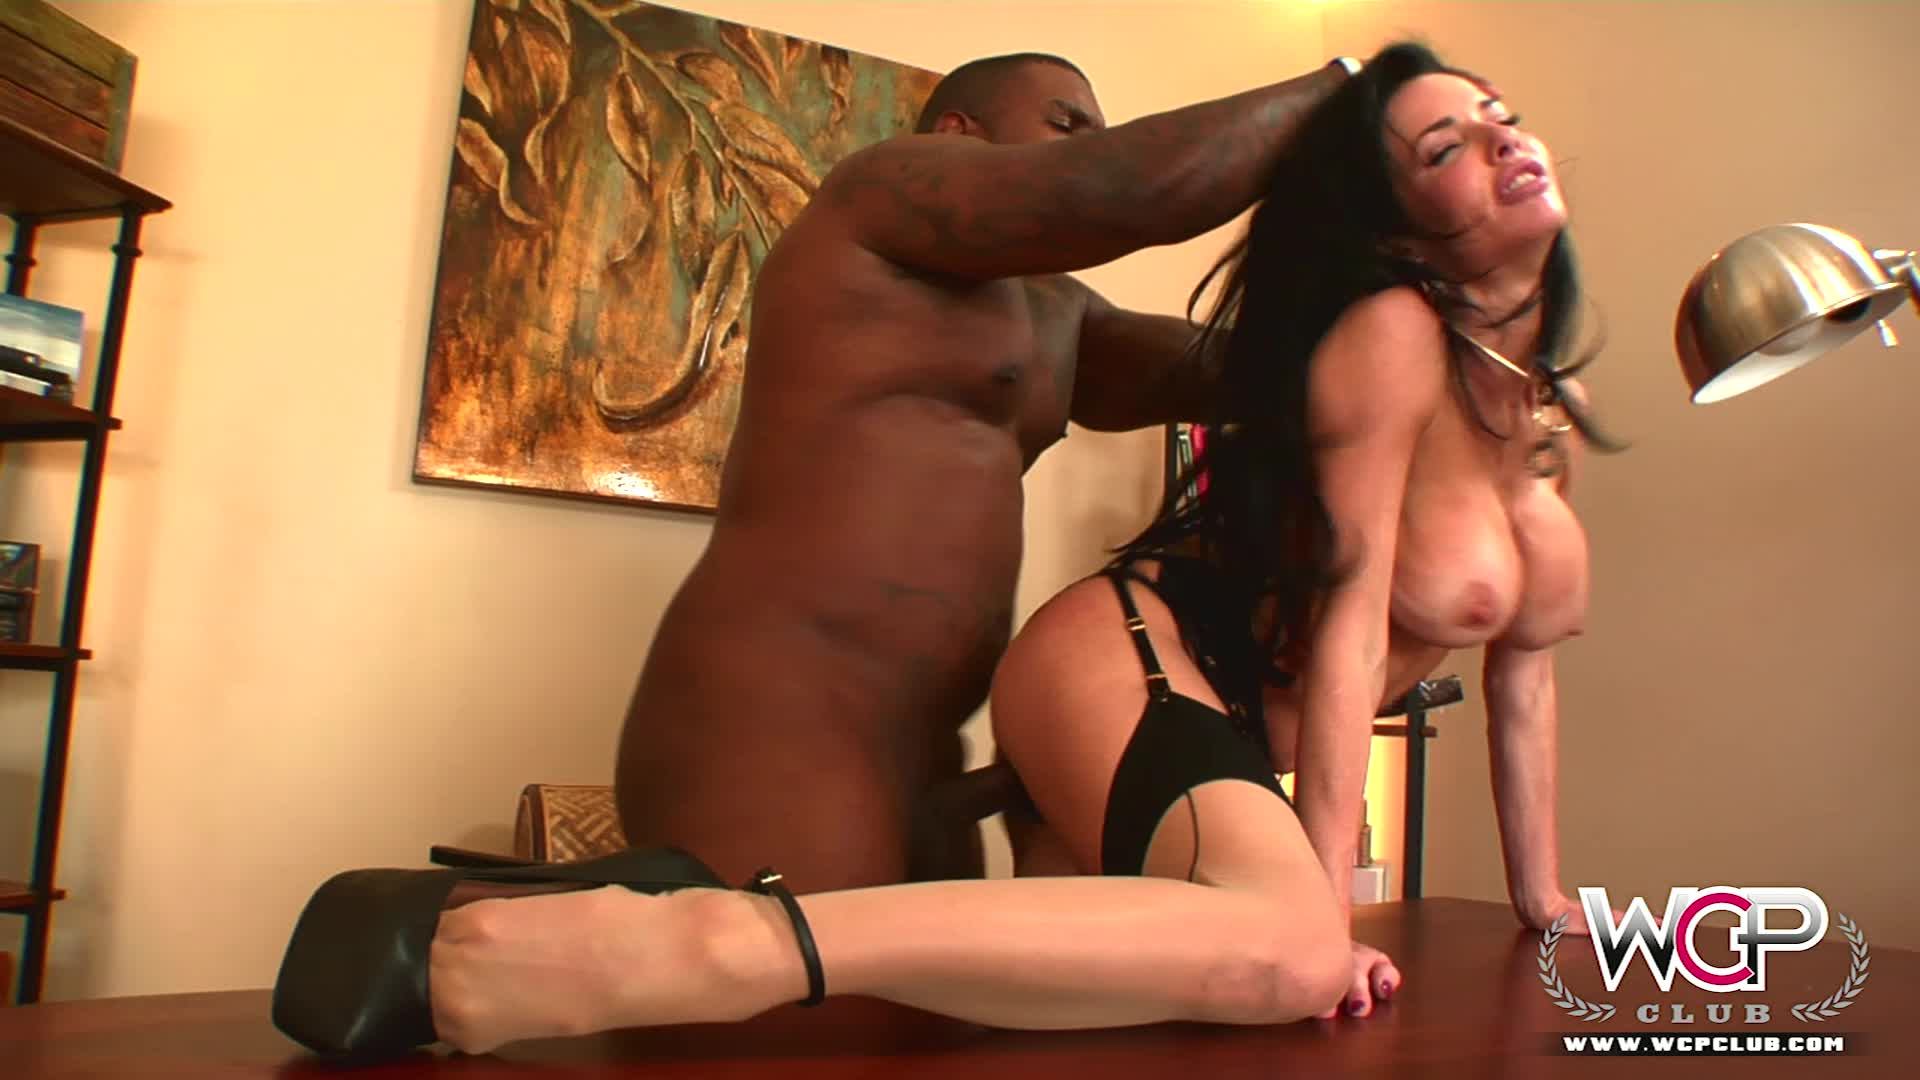 Busty milf Veronica Avluv in peek-a-boo lingerie and stockings rides a hung black coach